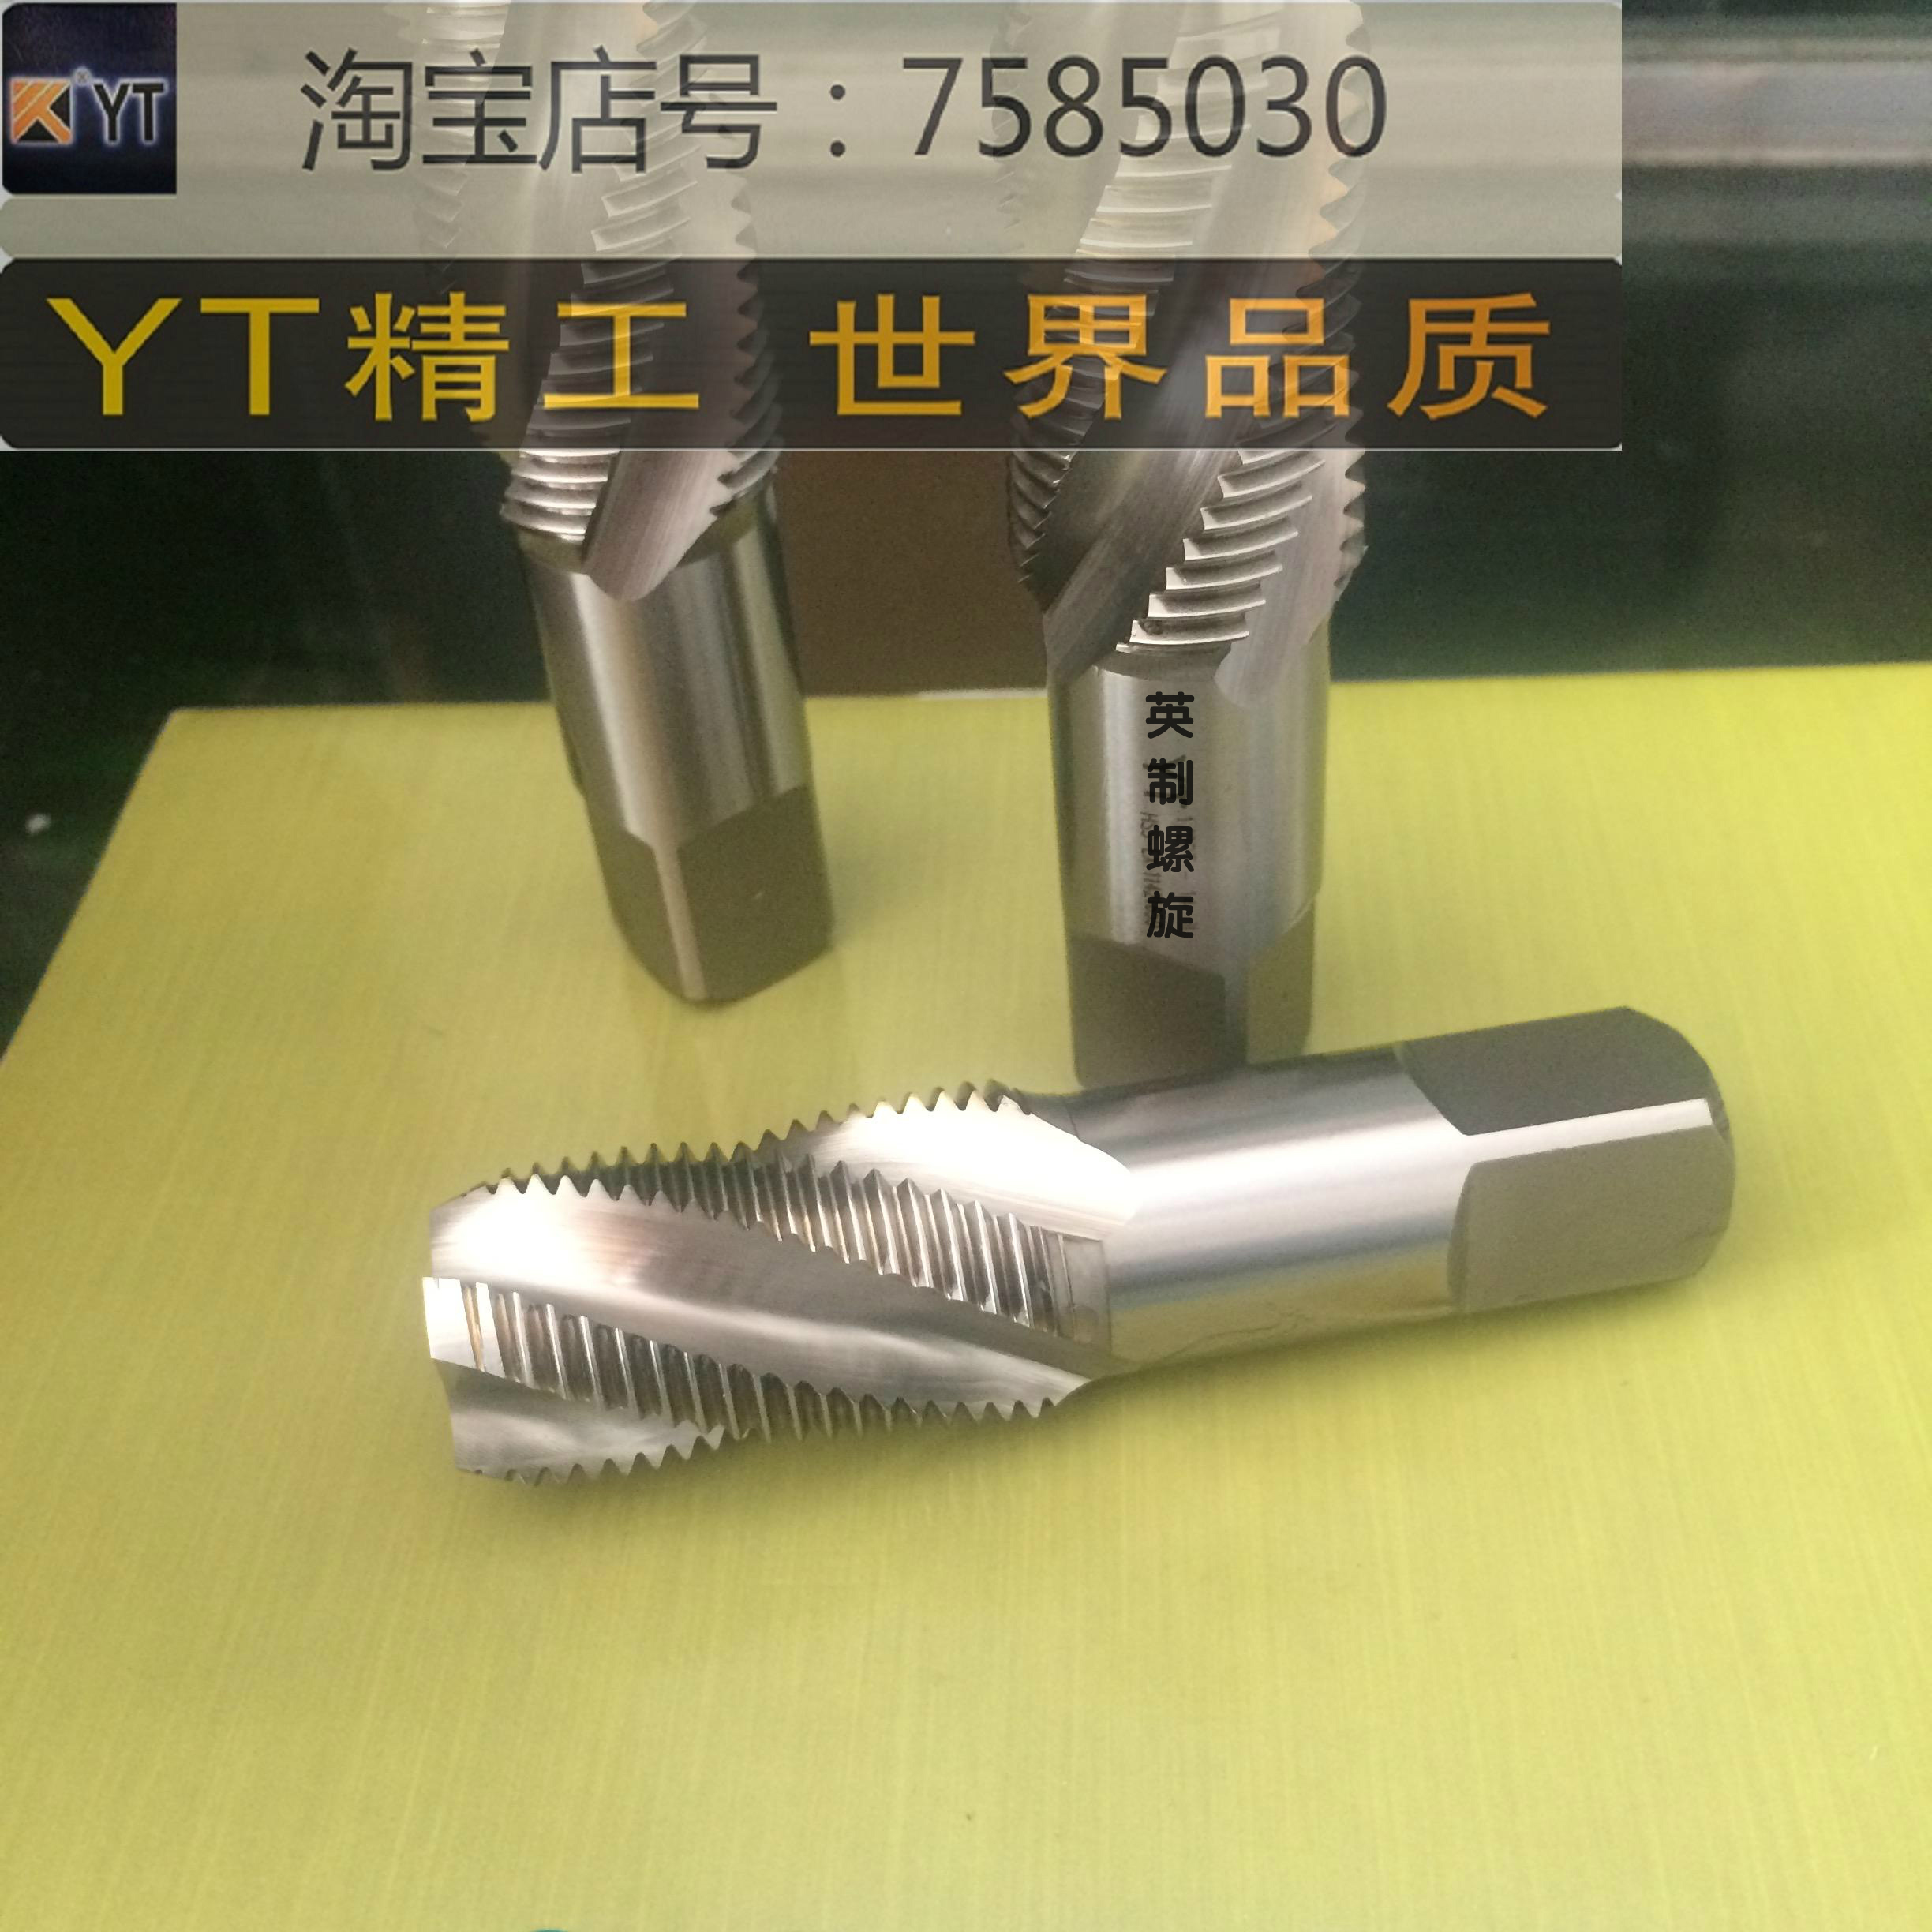 Japan YT inch BSW machine with coarse tooth spiral tap 1-5/8-51-2/4-52-4.5 wire tapping